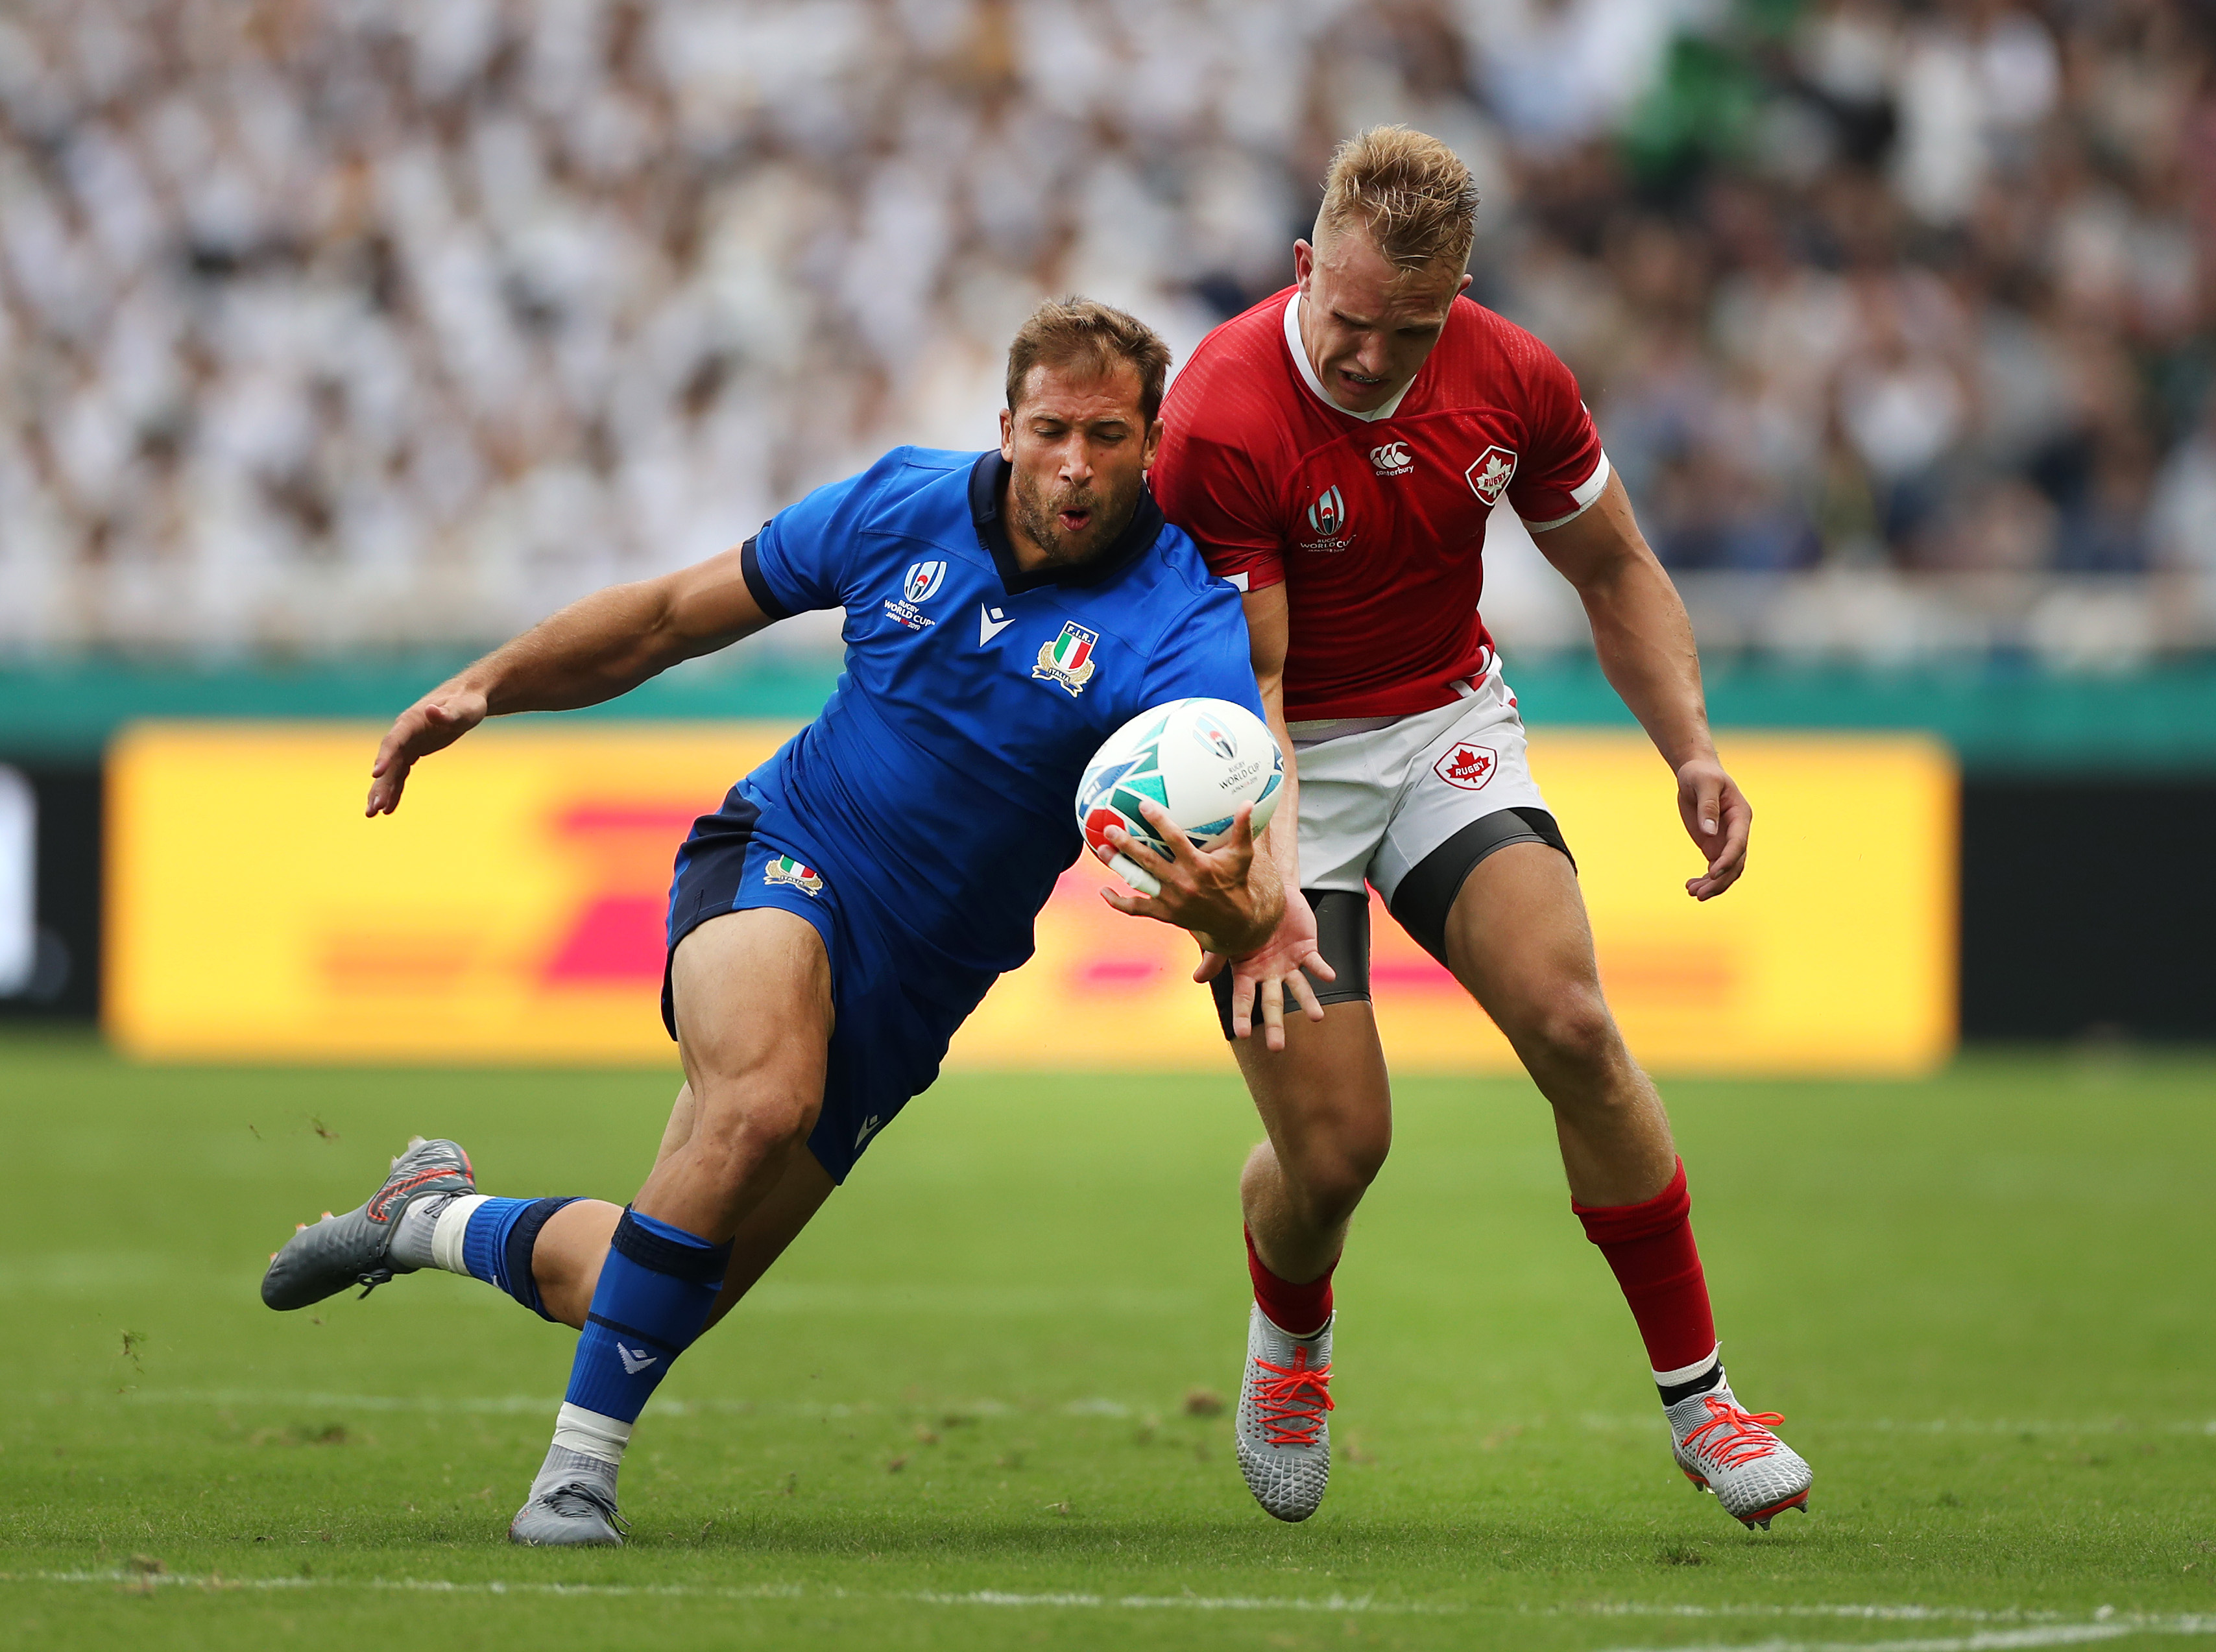 Italy vs canada rugby world cup